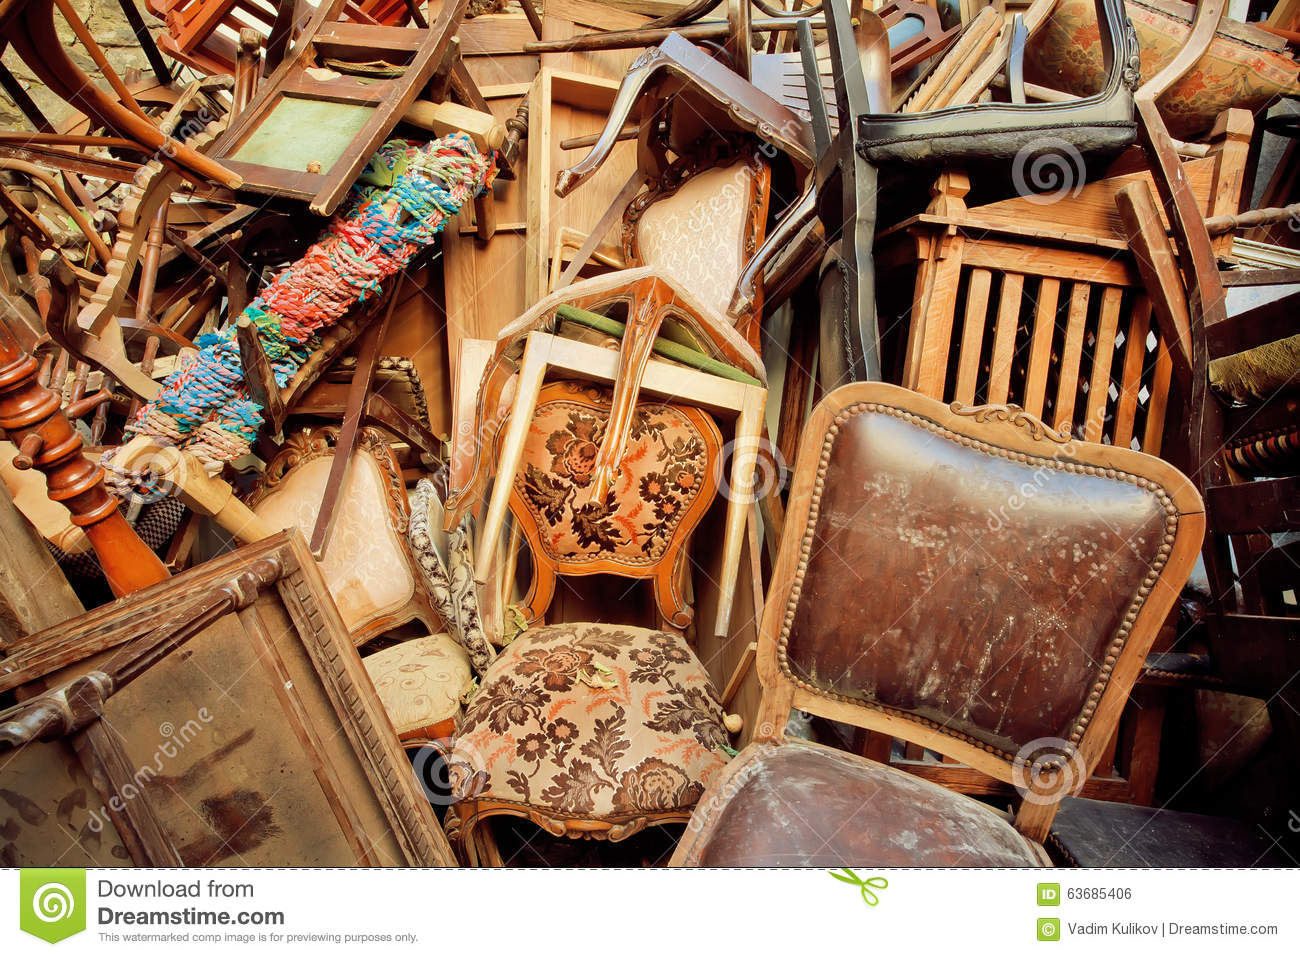 Vintage Wooden Furniture In Trash Warehouse Of Antique Market Stock